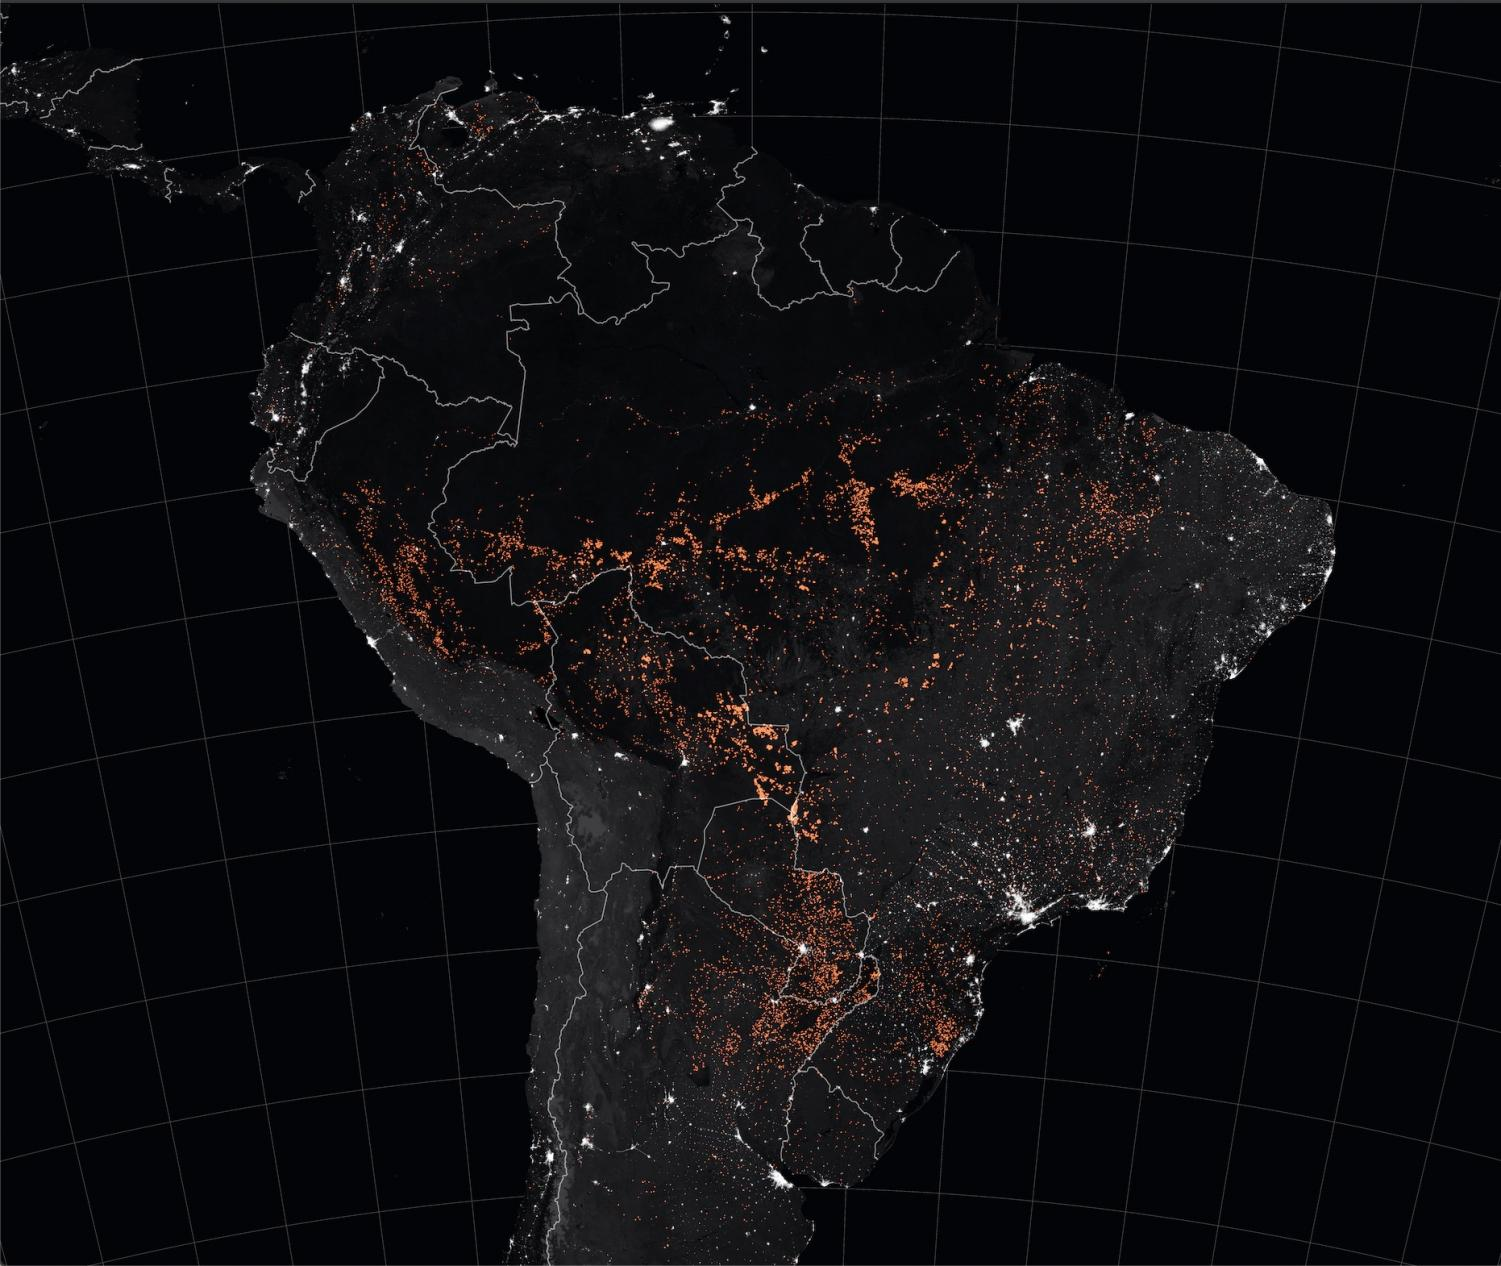 A NASA Earth Observatory image taken in August 2019 that captures the Amazon rainforest's burning fires. Photo Credit: NASA Earth Observatory images by Joshua Stevens, using MODIS data from NASA EOSDIS/LANCE and GIBS/Worldview, Fire Information for Resource Management System (FIRMS) data from NASA EOSDIS, and data from the Global Fire Emissions Database (GFED)